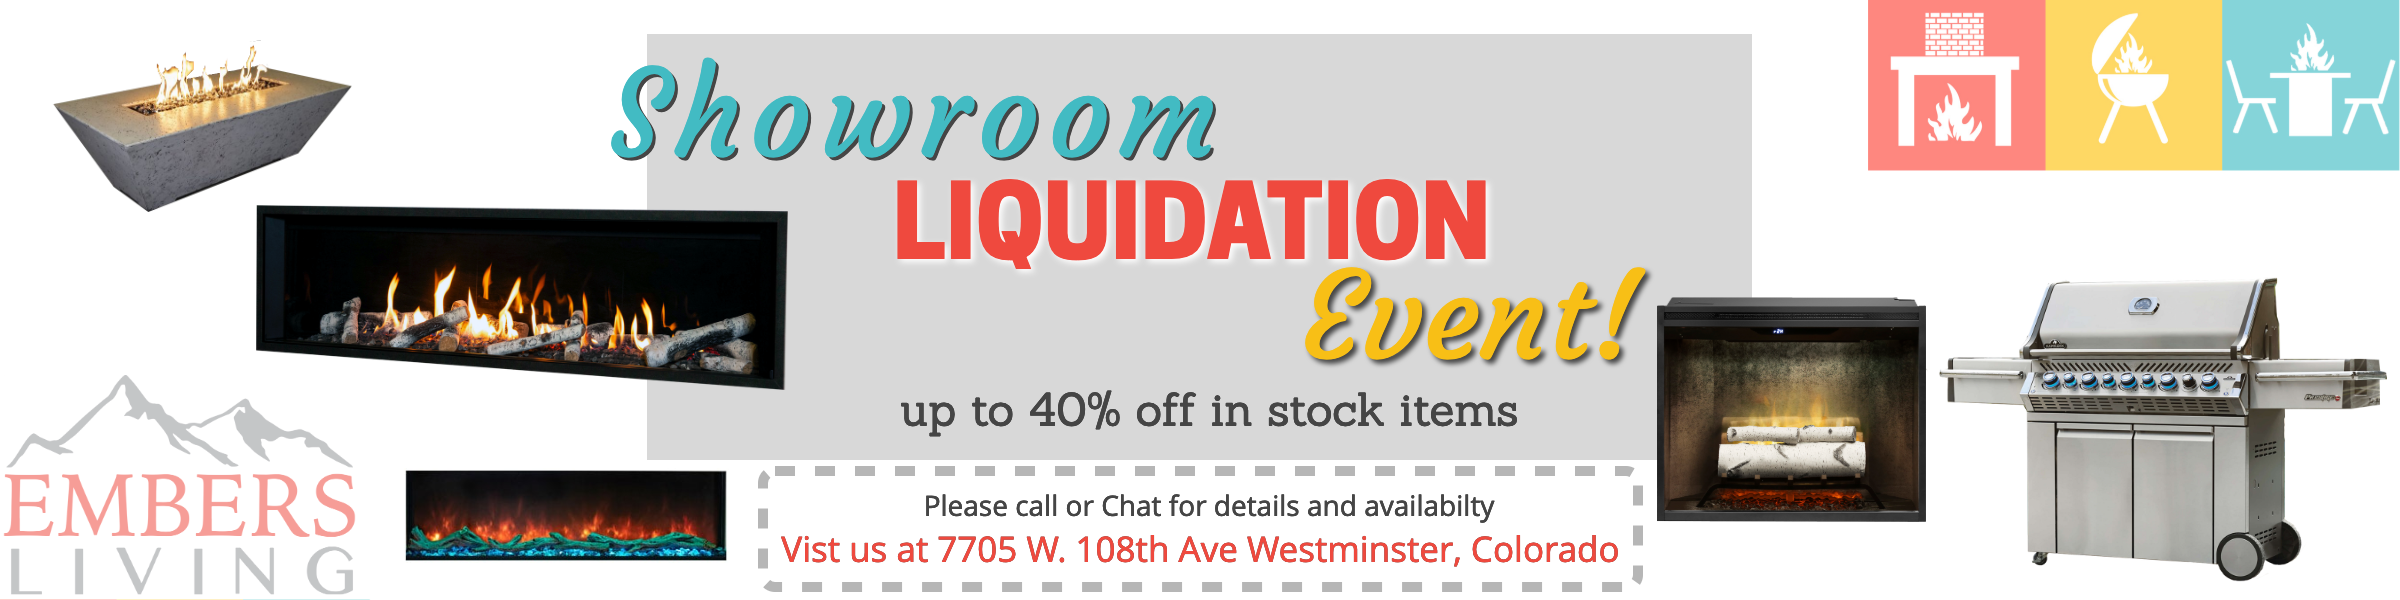 showroom-liquidation-event.png